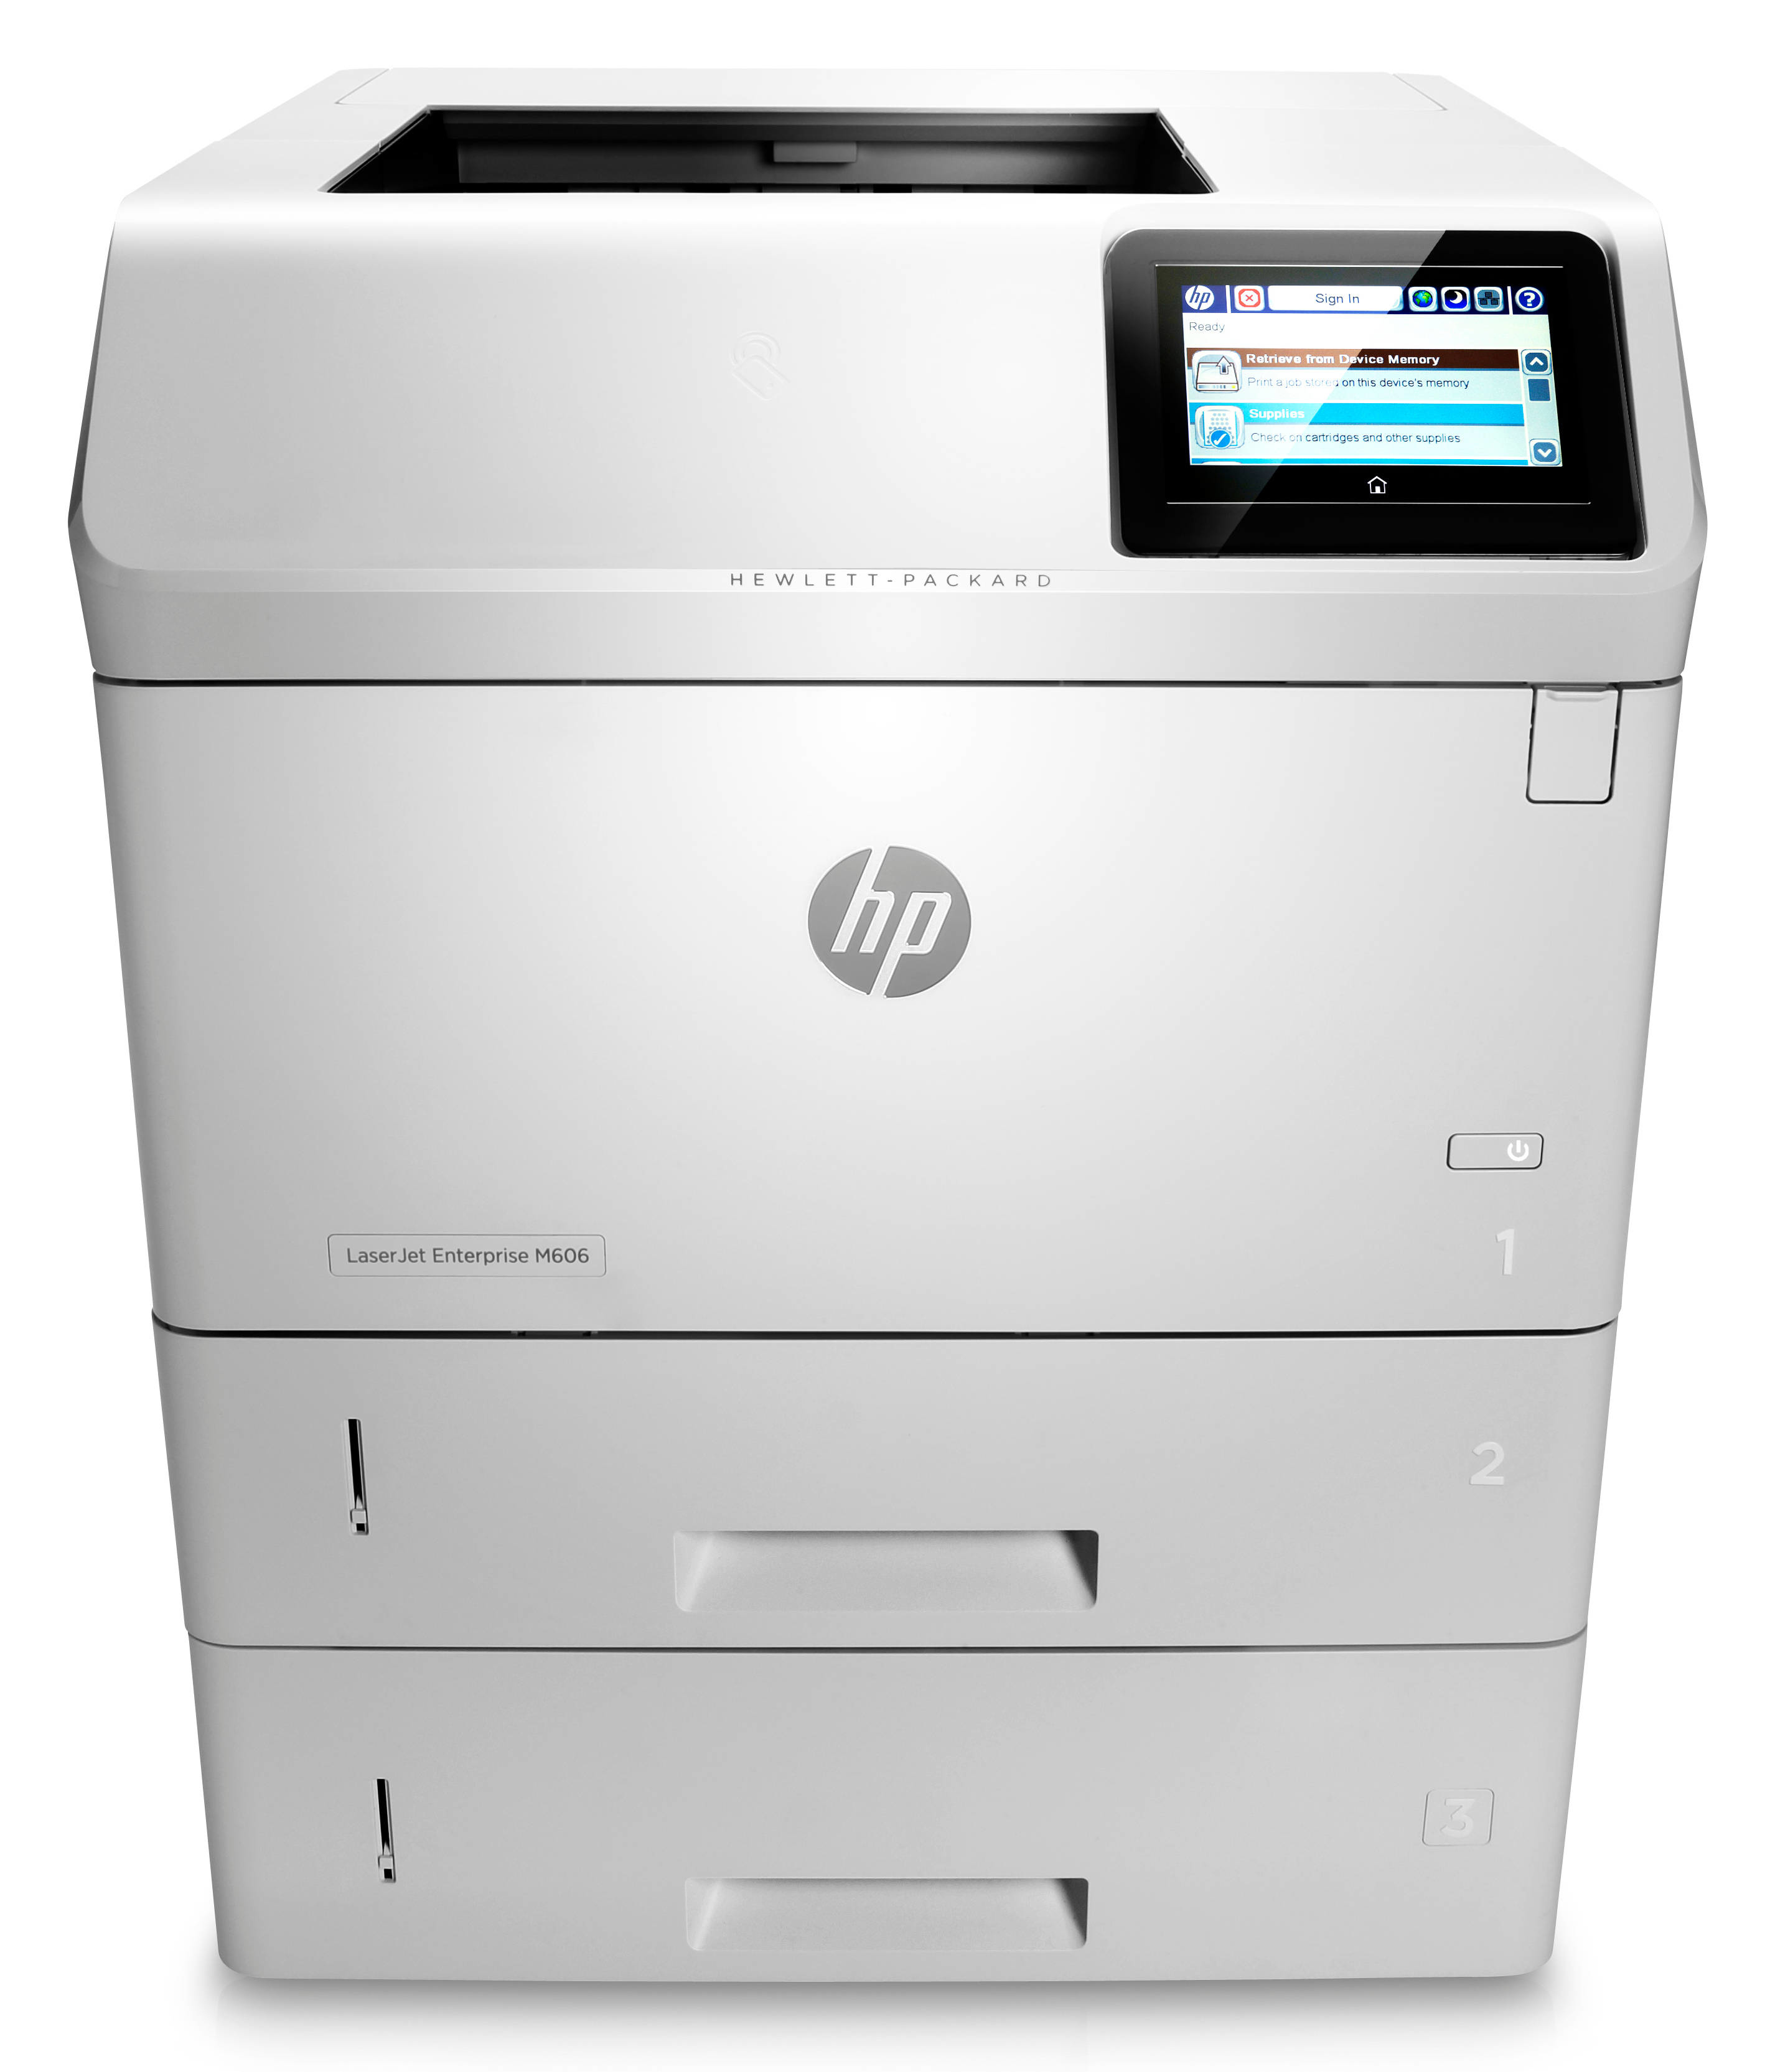 HP LaserJet Enterprise M606x multifunctional Colour Laser Printer E6B73A - Refurbished